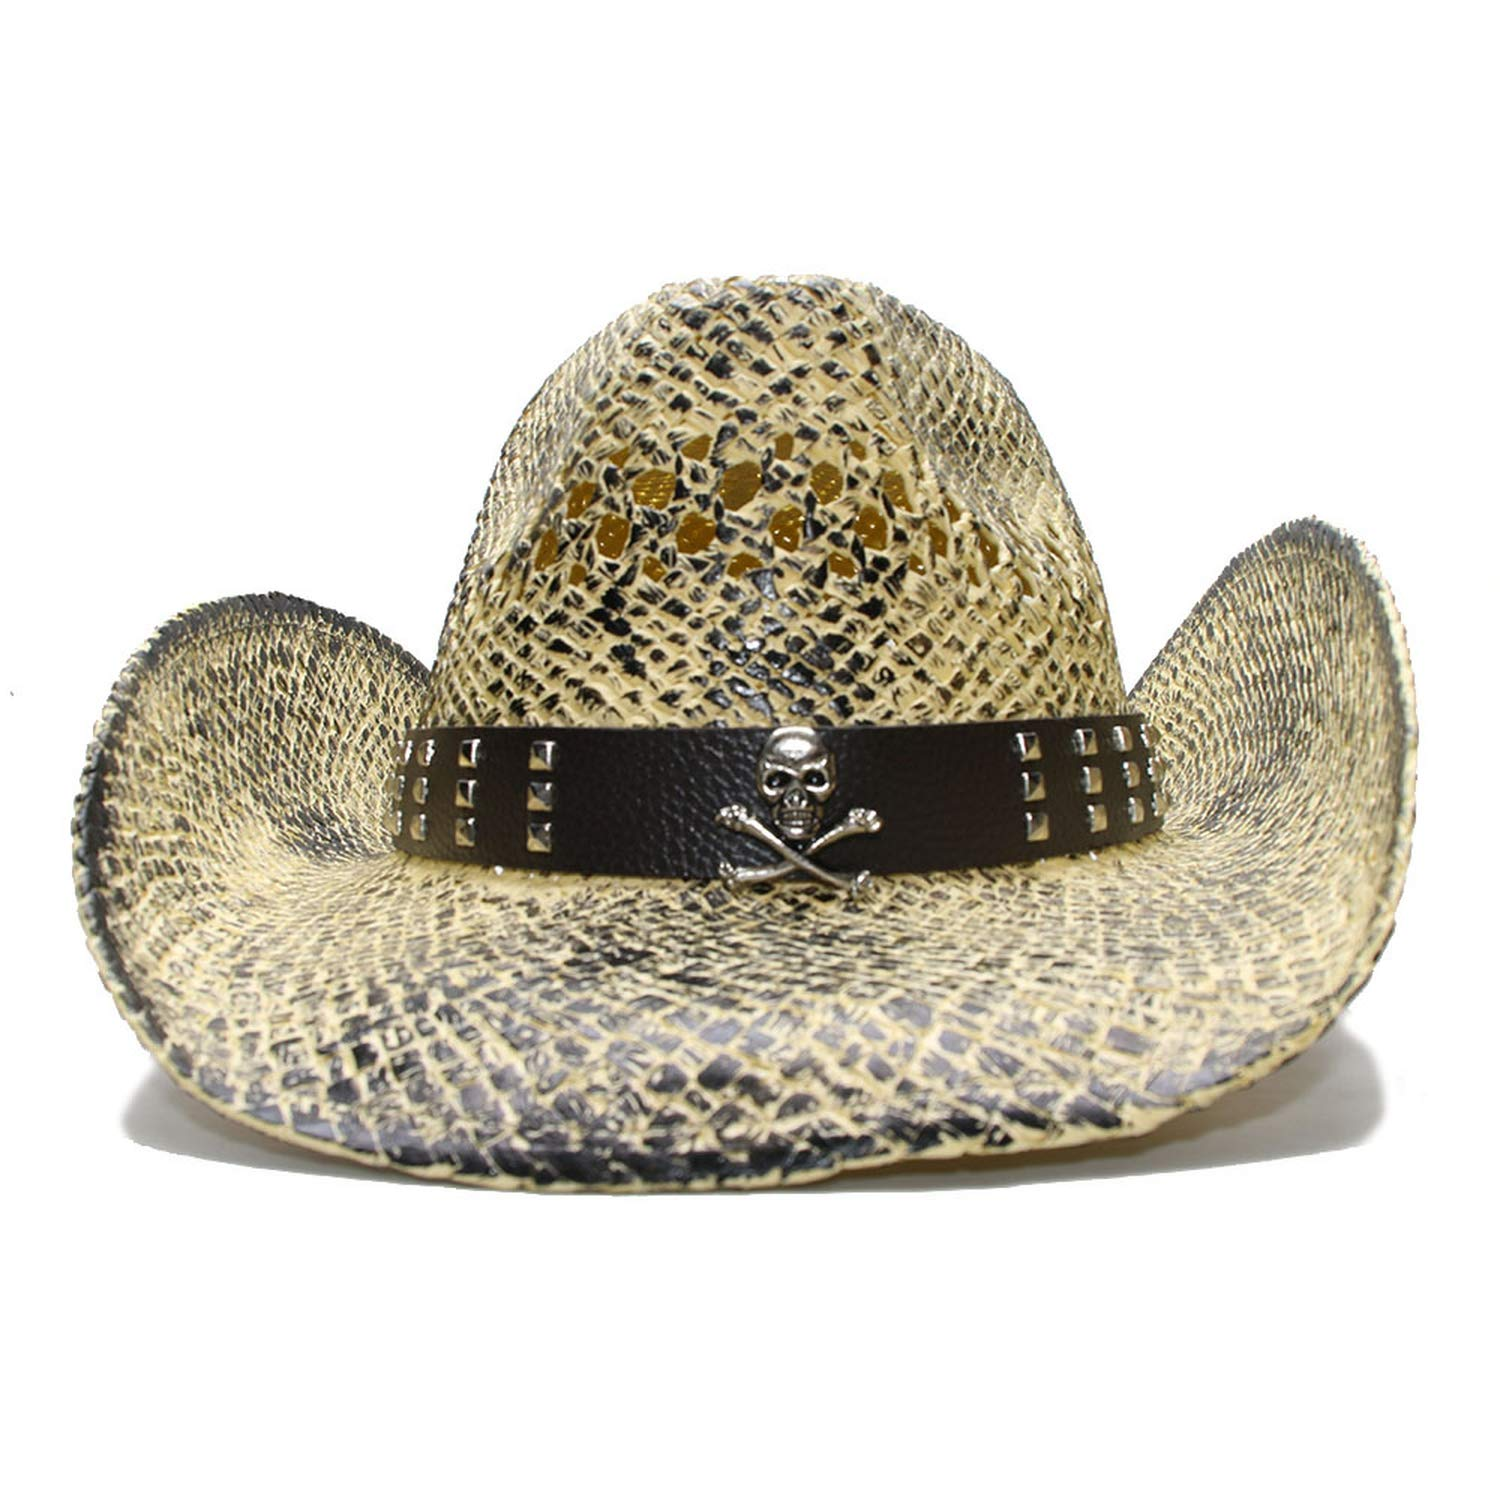 Black Vintage Women Mens Wide Brim Straw Beach Cowboy Cowgirl Western Hat Hollow Out Skull Leather Band